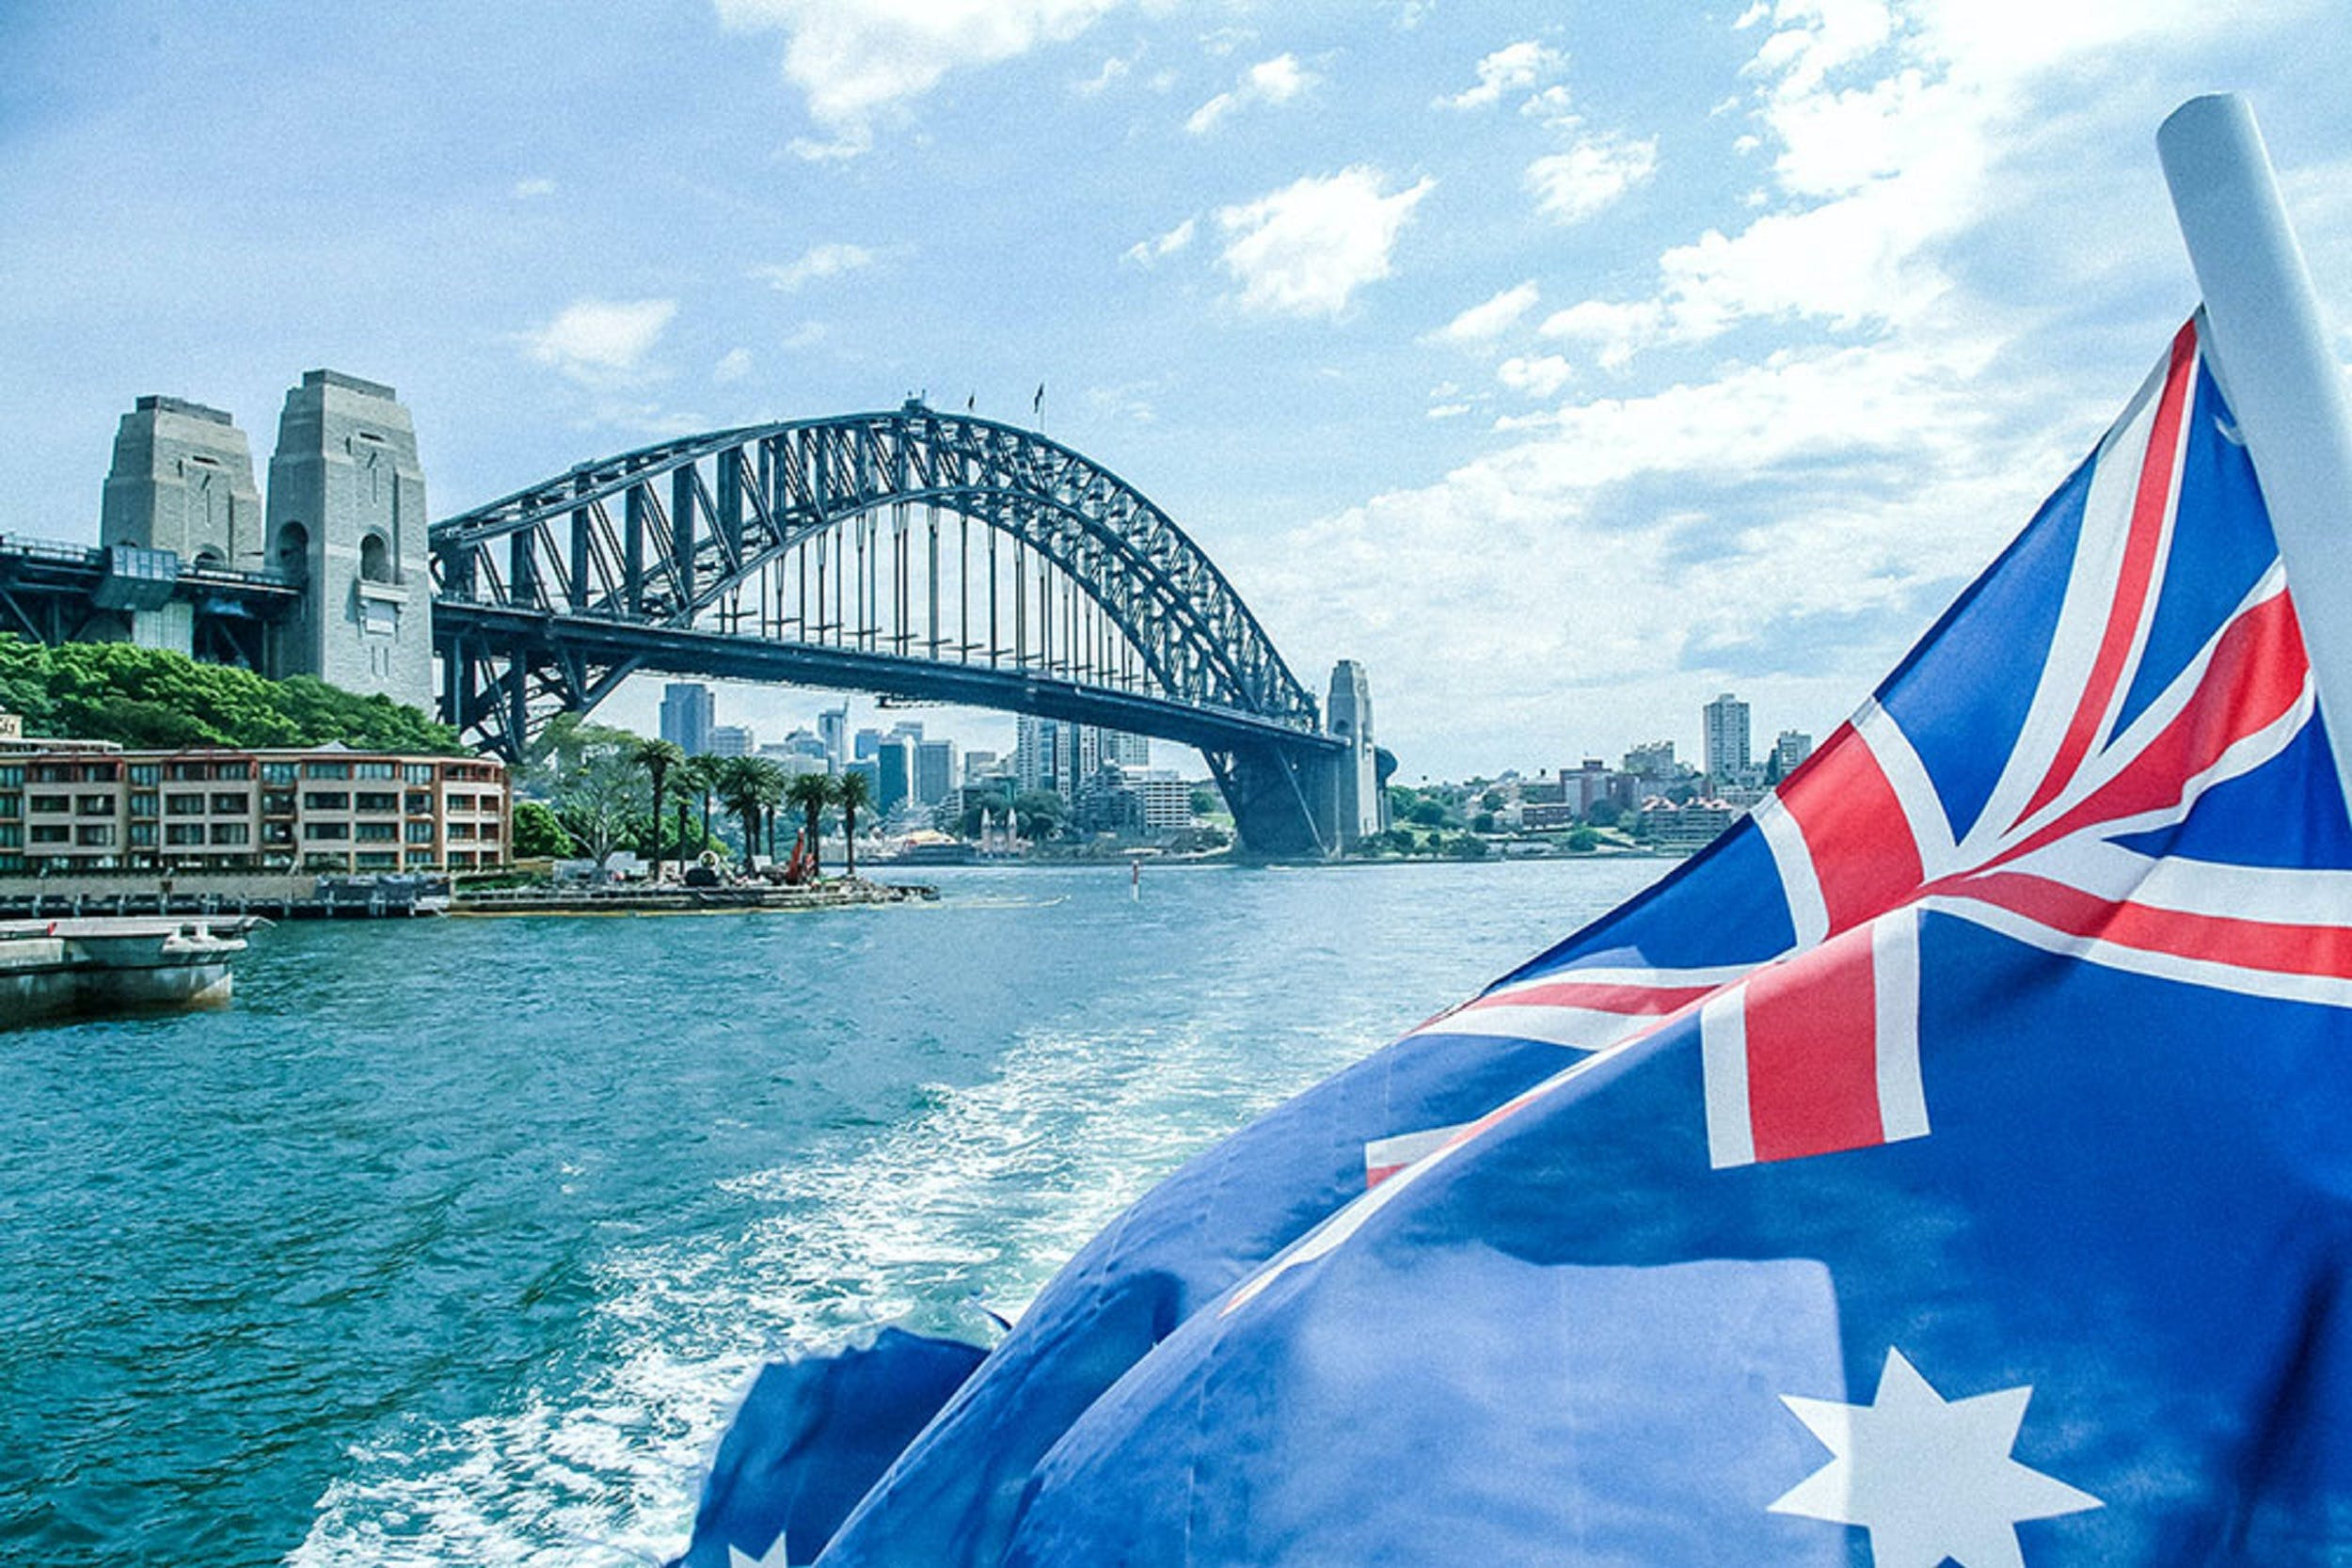 Australia Day Lunch and Dinner Cruises On Sydney Harbour with Sydney Showboats